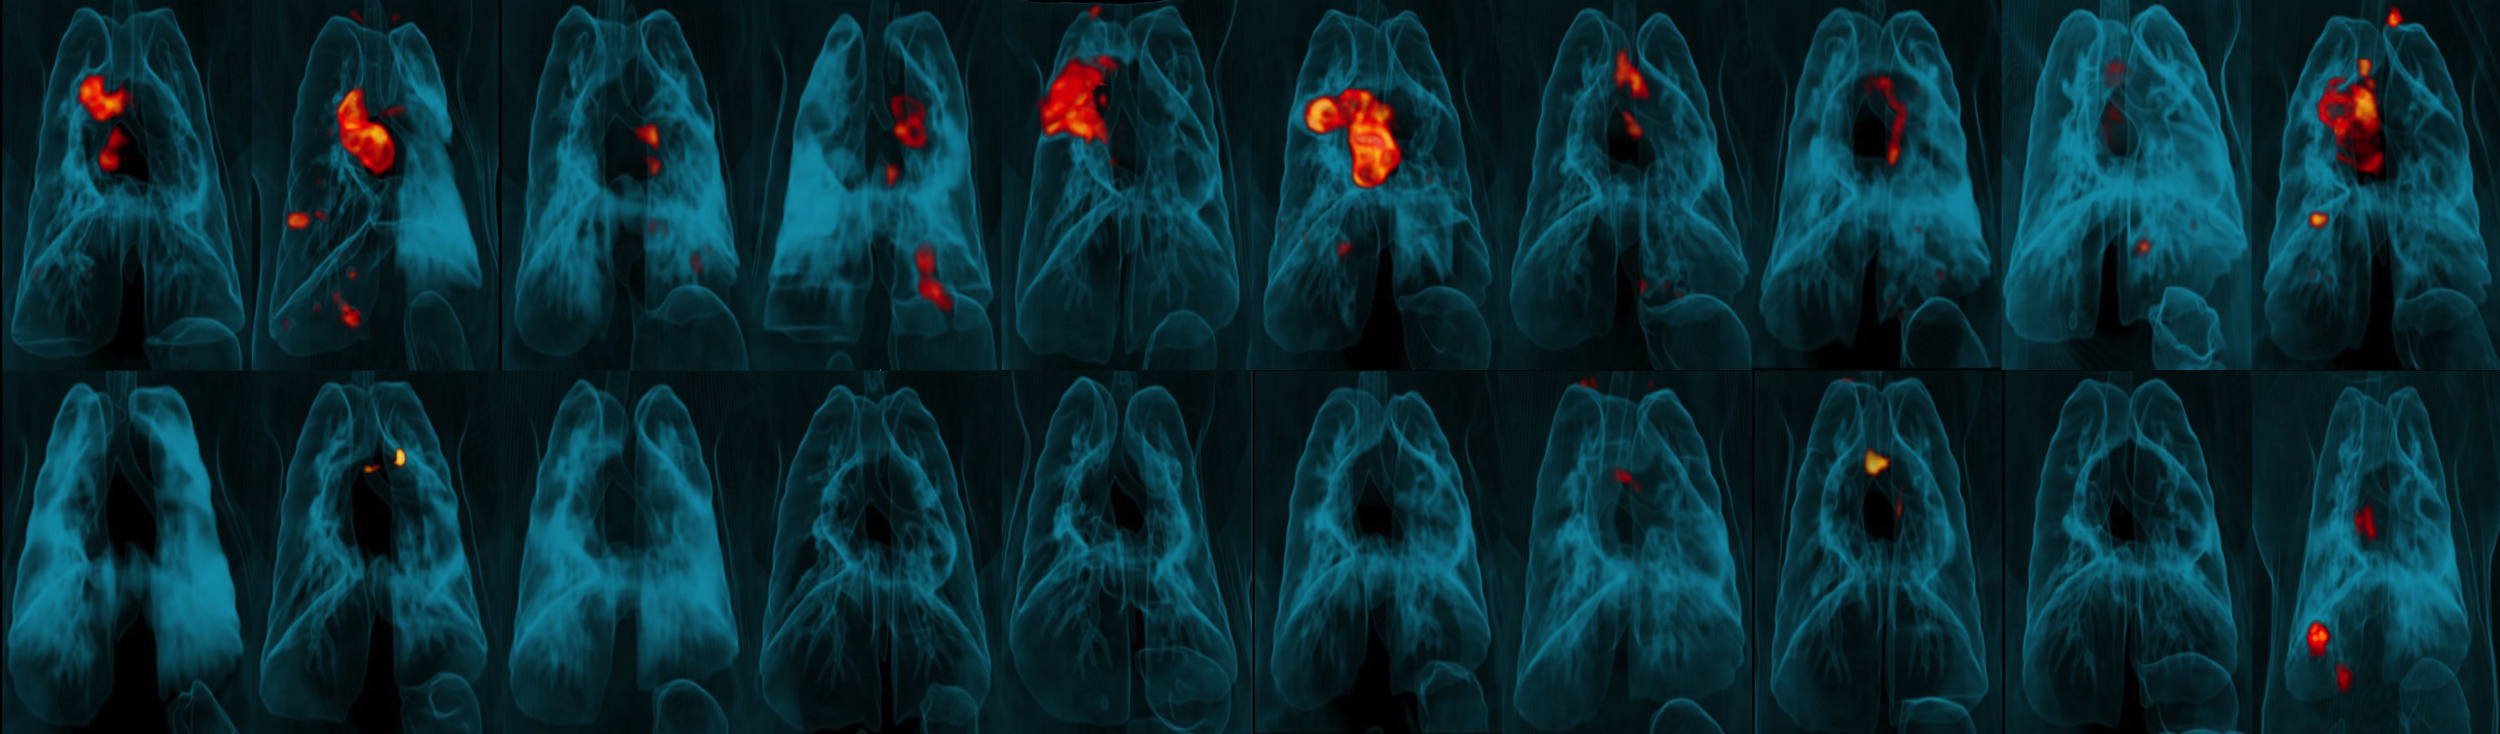 Image of PET-CT lung scans